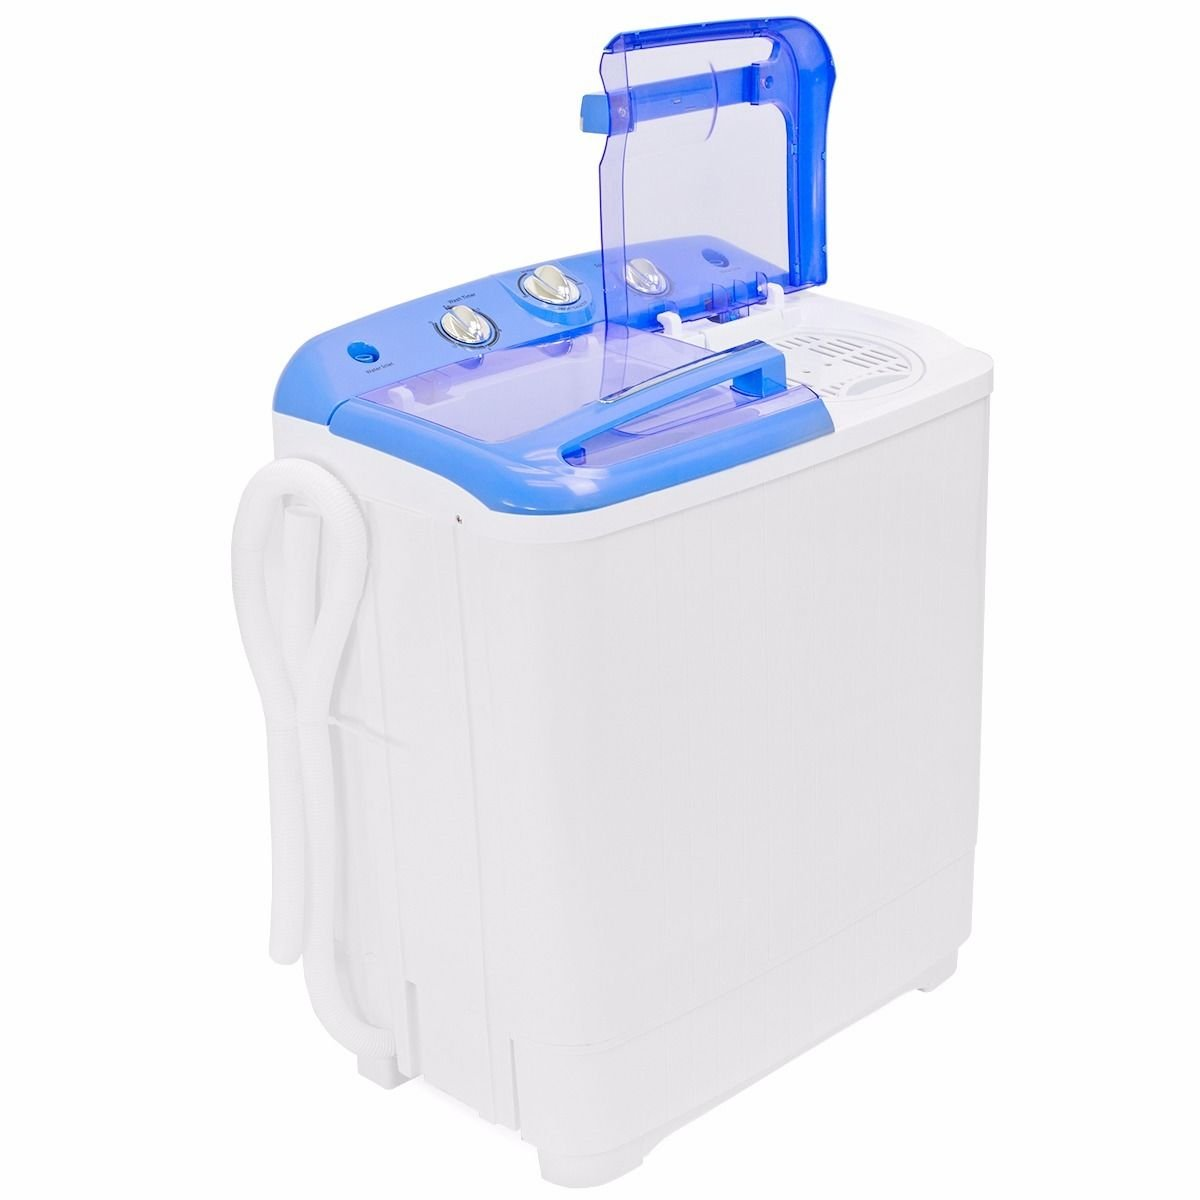 Gracelove Portable Mini Washer Dorm RV Cycle Compact 9 lbs Wash Dry Spin Machine Laundry by Love+Grace (Image #4)